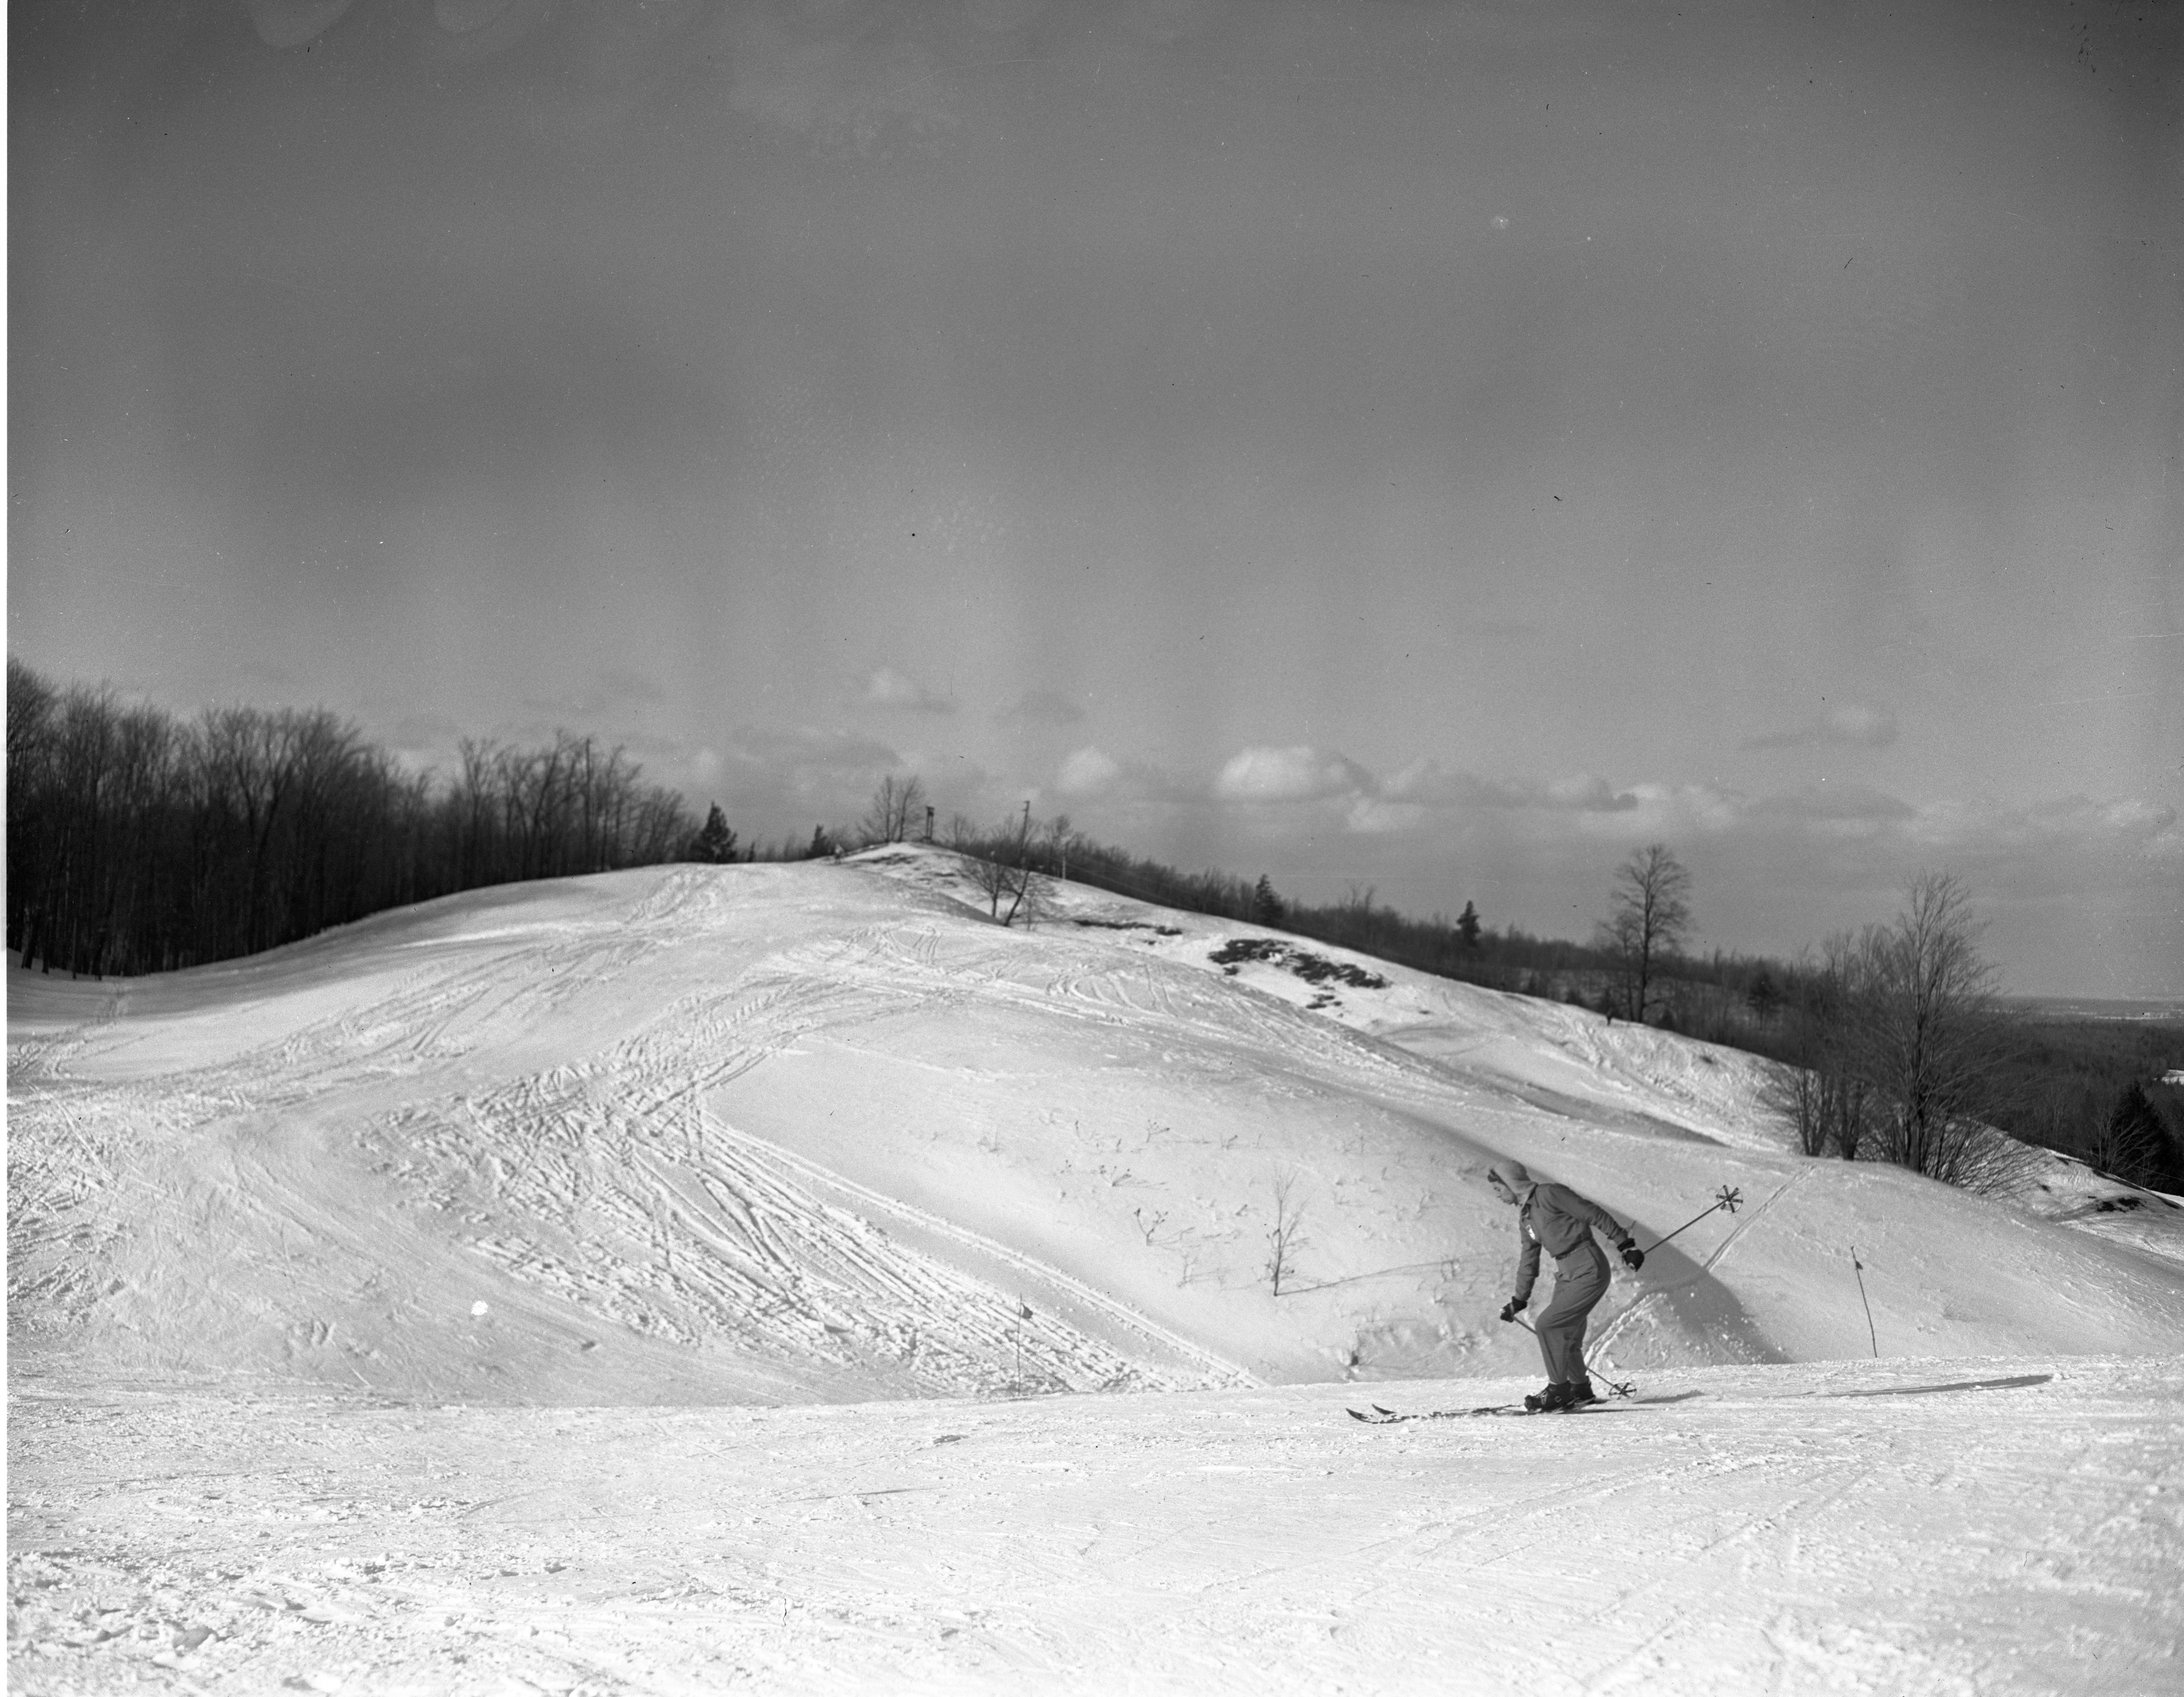 Stephanie Almon Skiing At The Otsego Club In Gaylord, February 1946 image